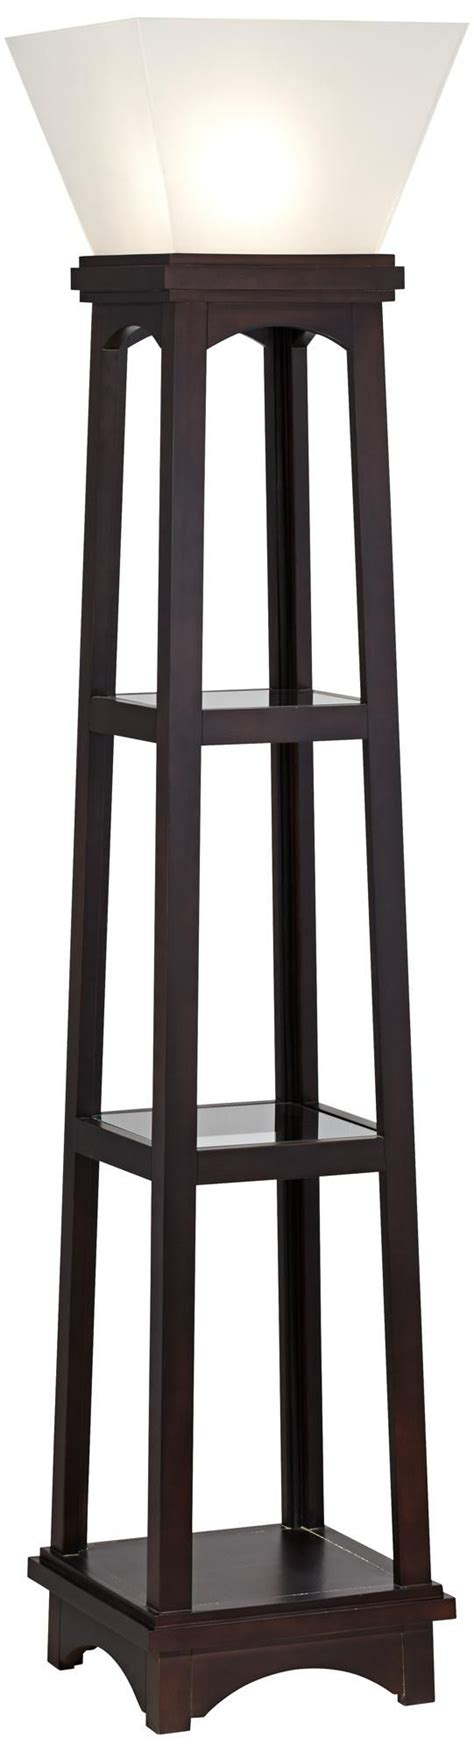 mainstays etagere floor l mainstays etagere floor l with 28 images flooring